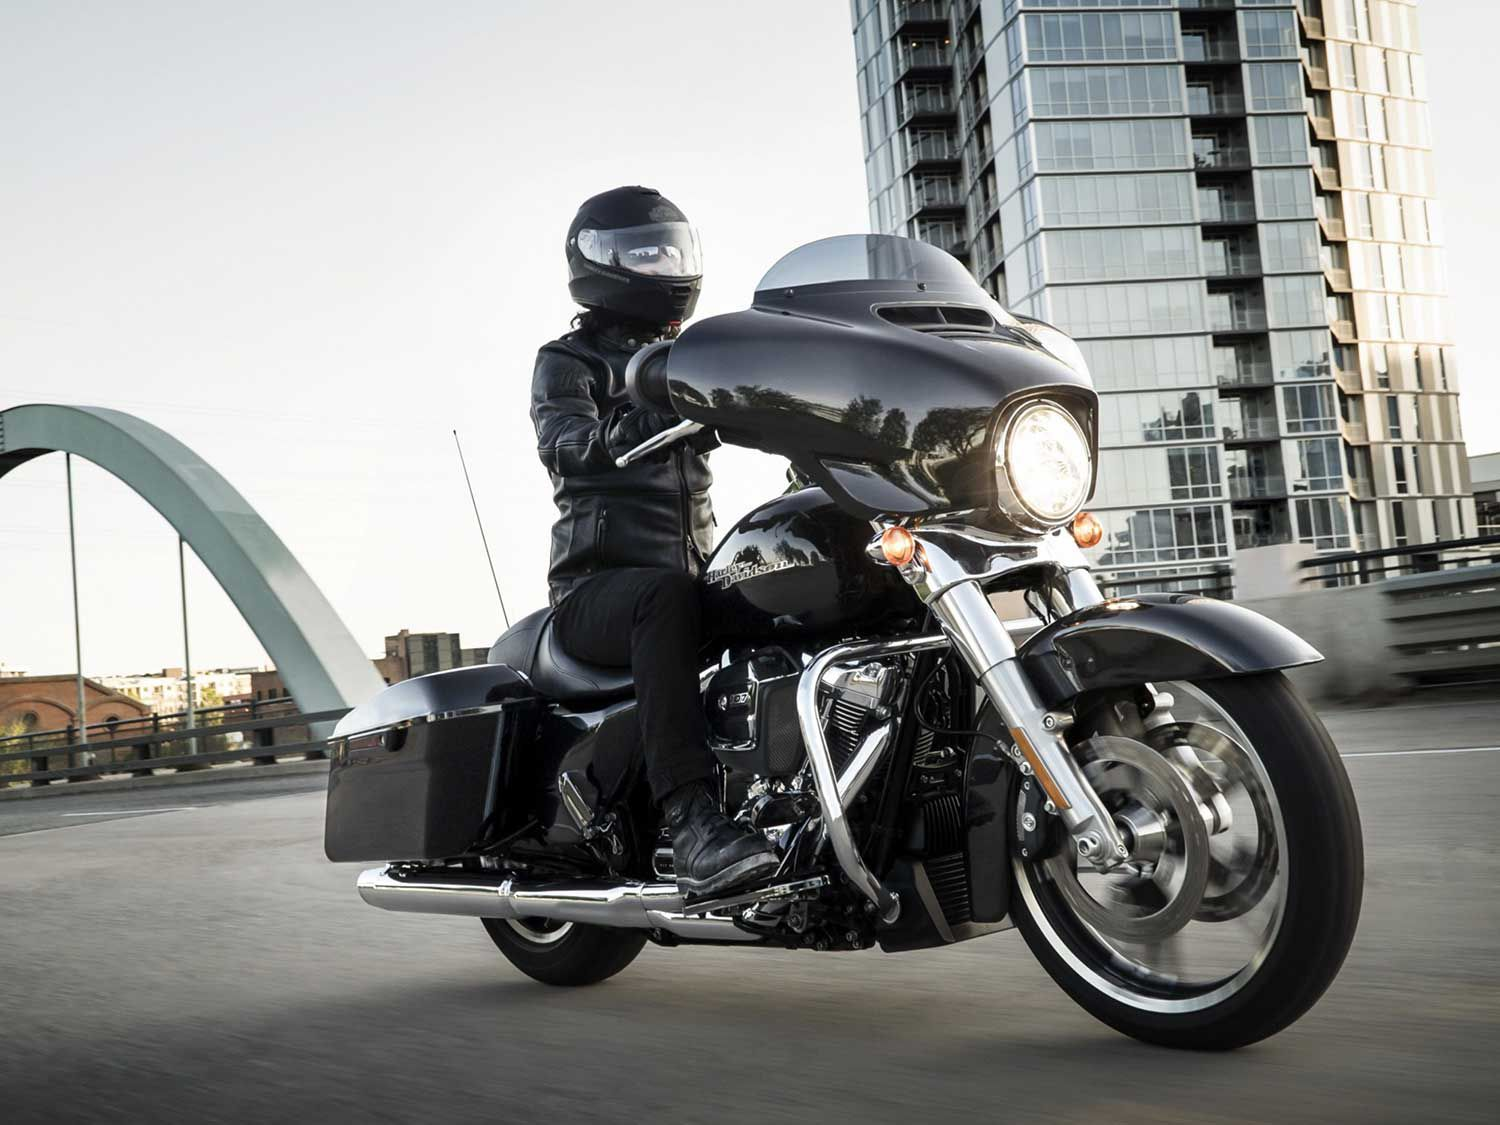 The Street Glide has been a chart-topper for years, but challengers to its throne are starting to stack up. Take a look at some other bagger options below.